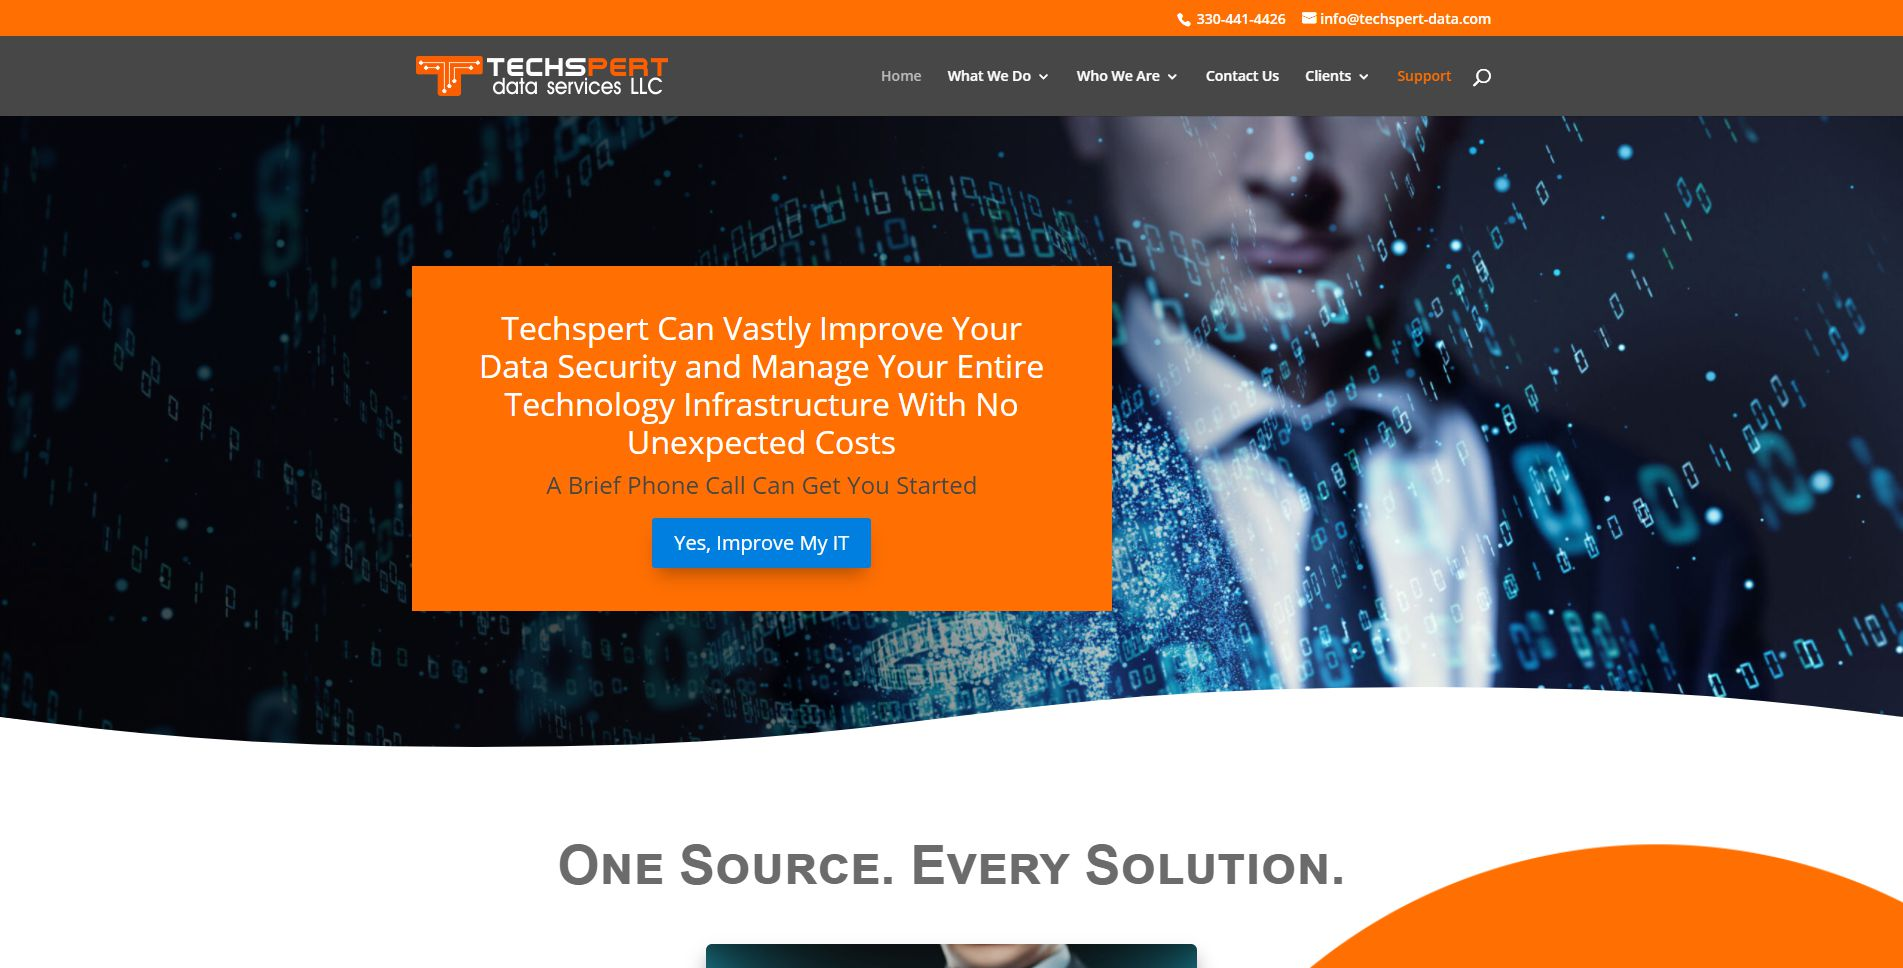 Screen capture of the Techspert Data Services home page.